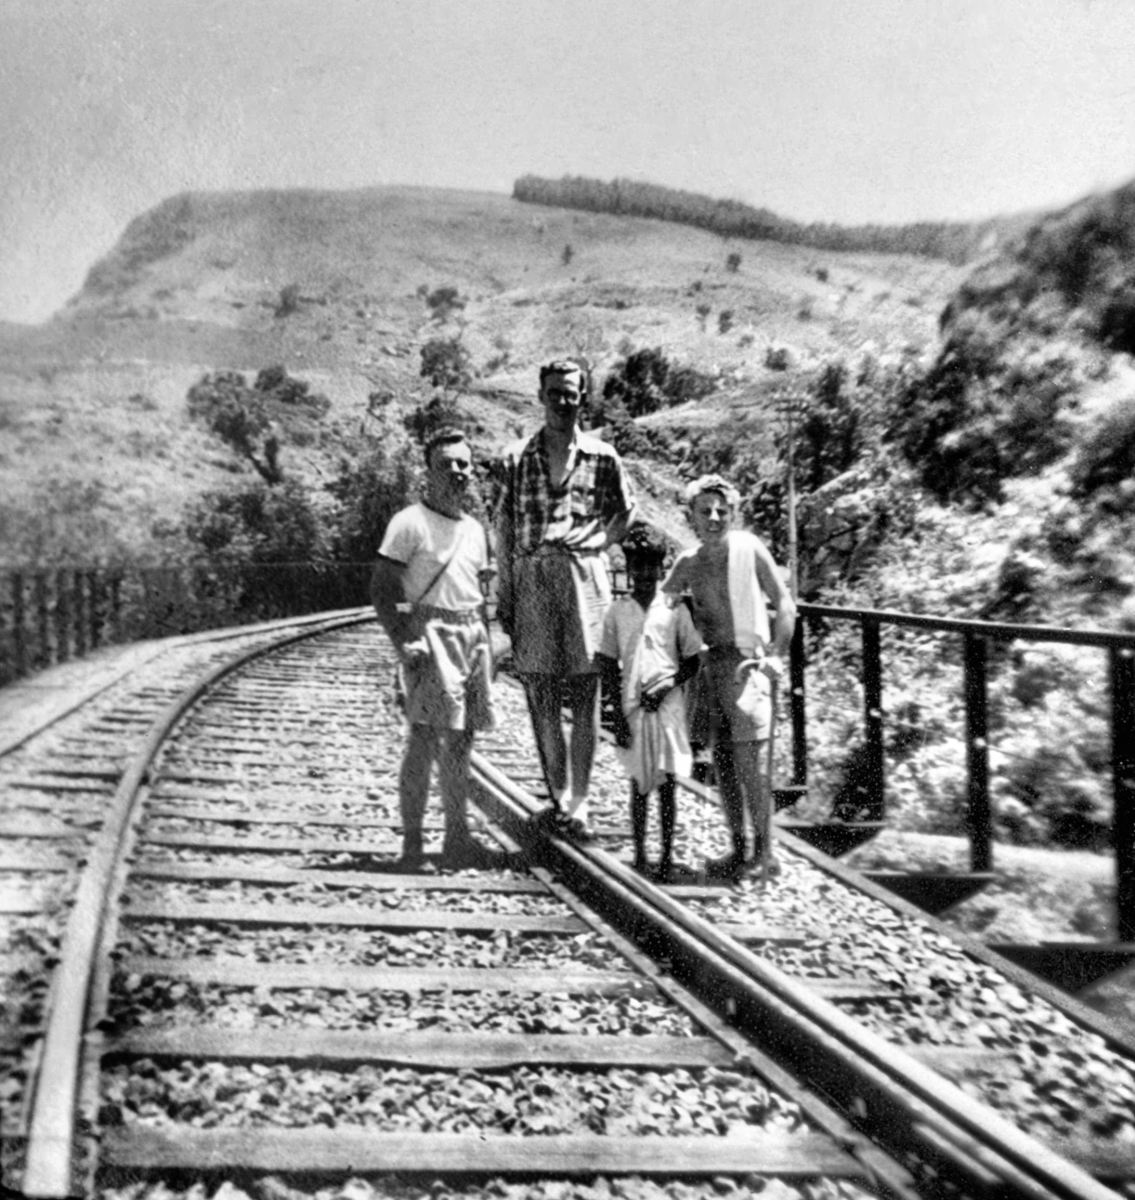 Dave Neale and Friends at Ella Gap. 1951